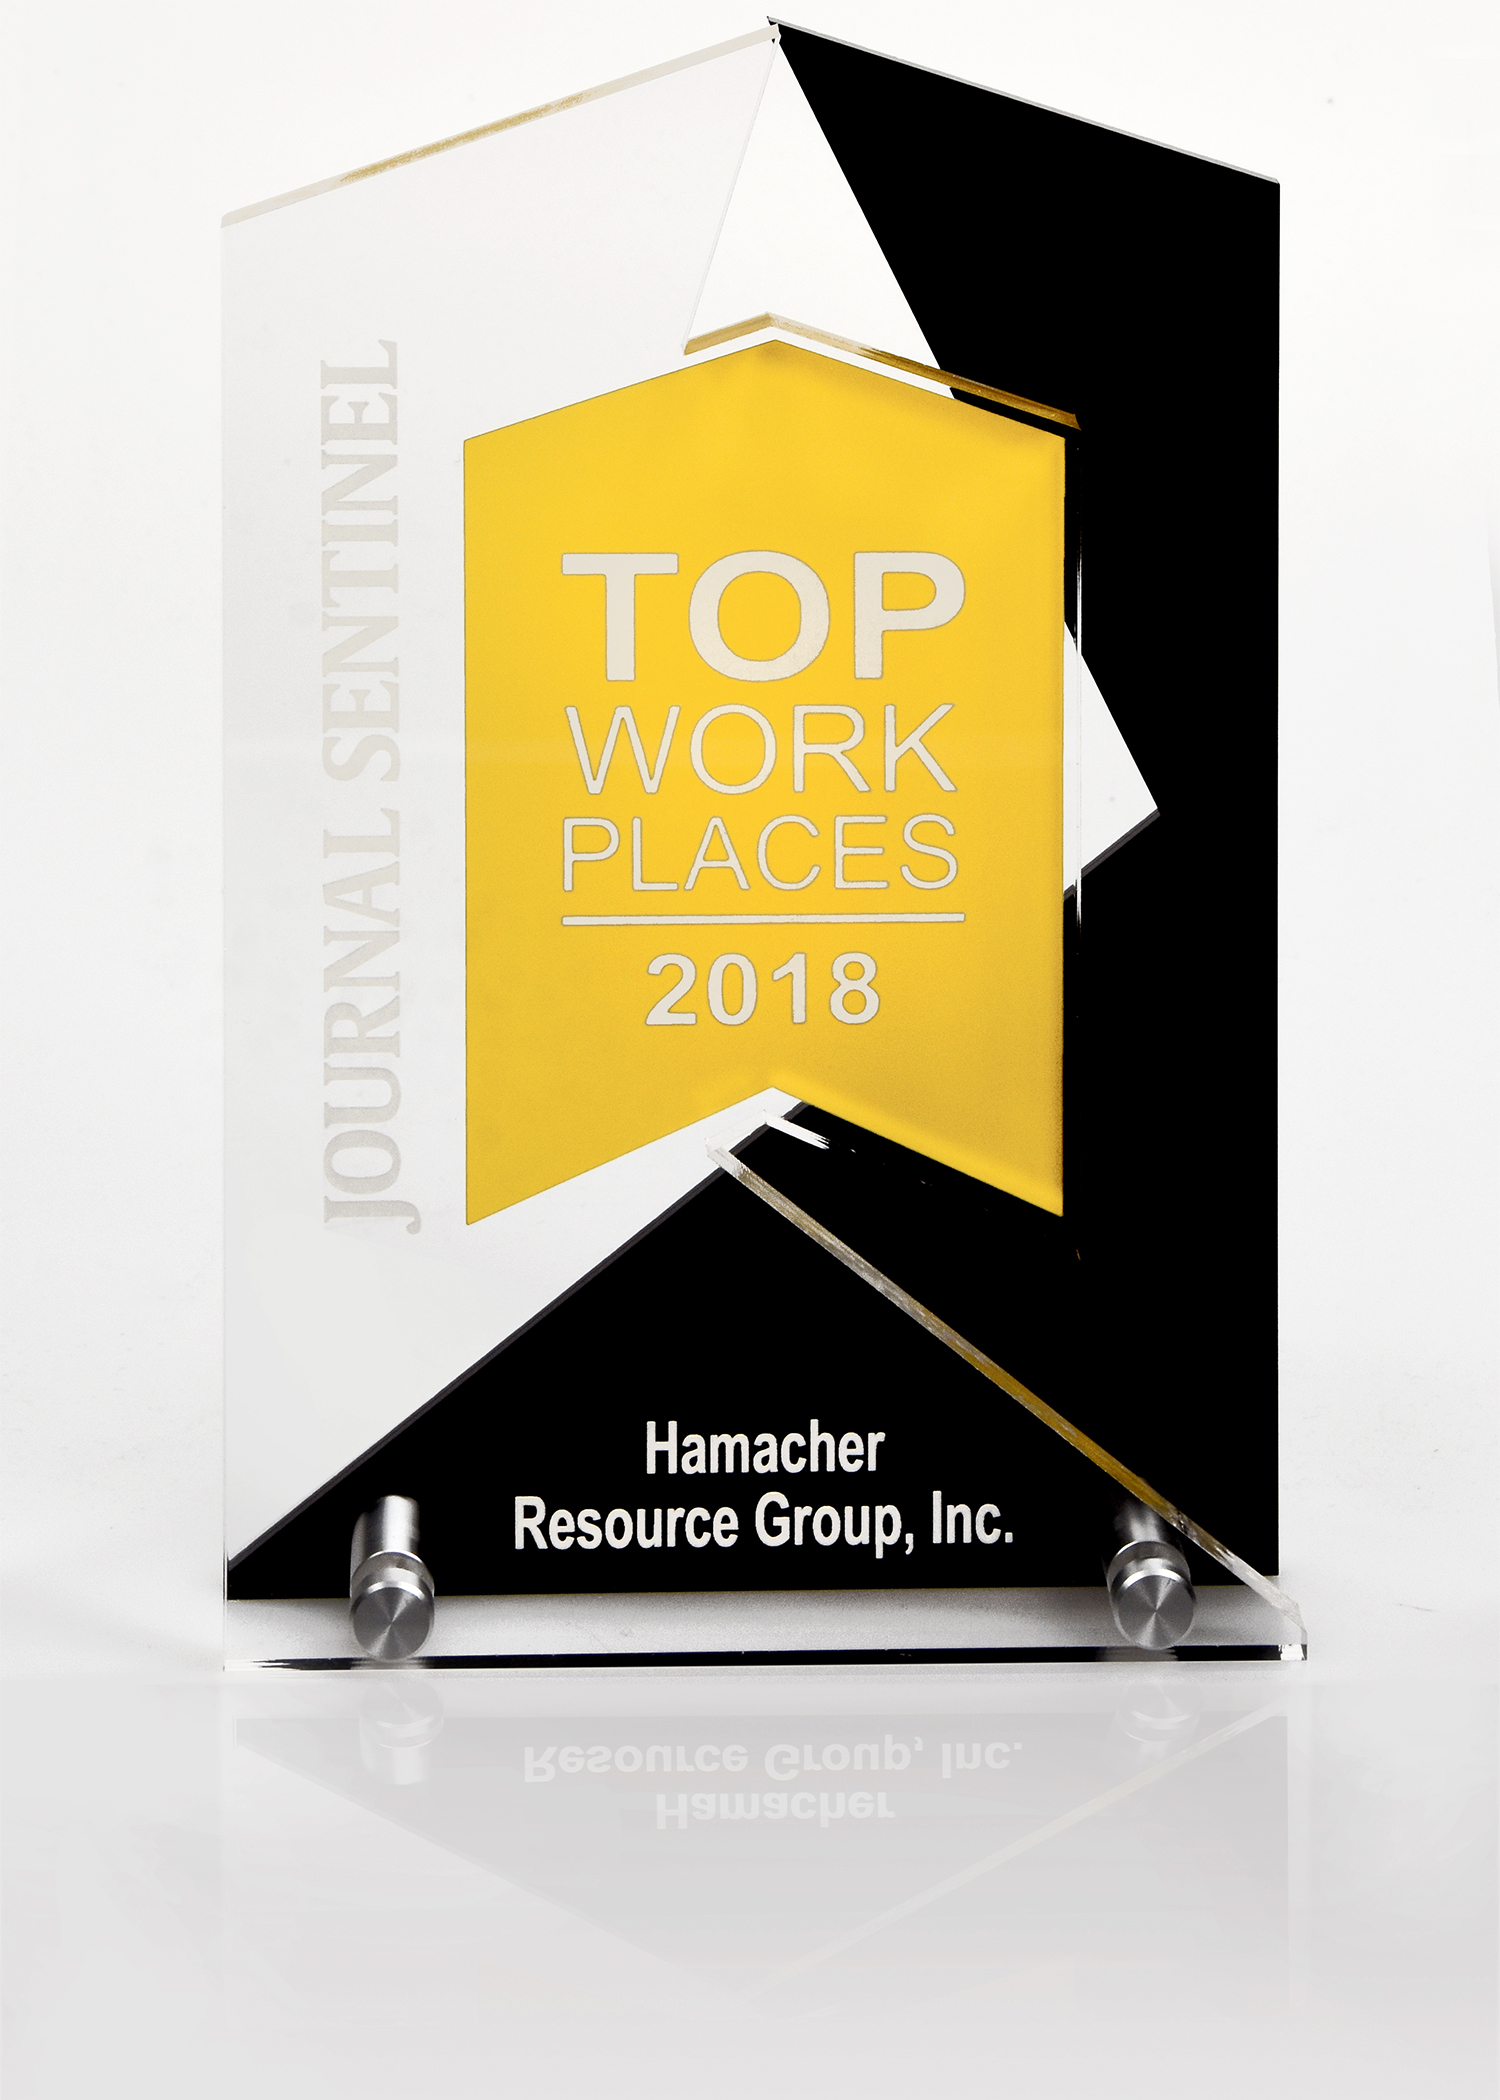 2018 Top Workplace Award